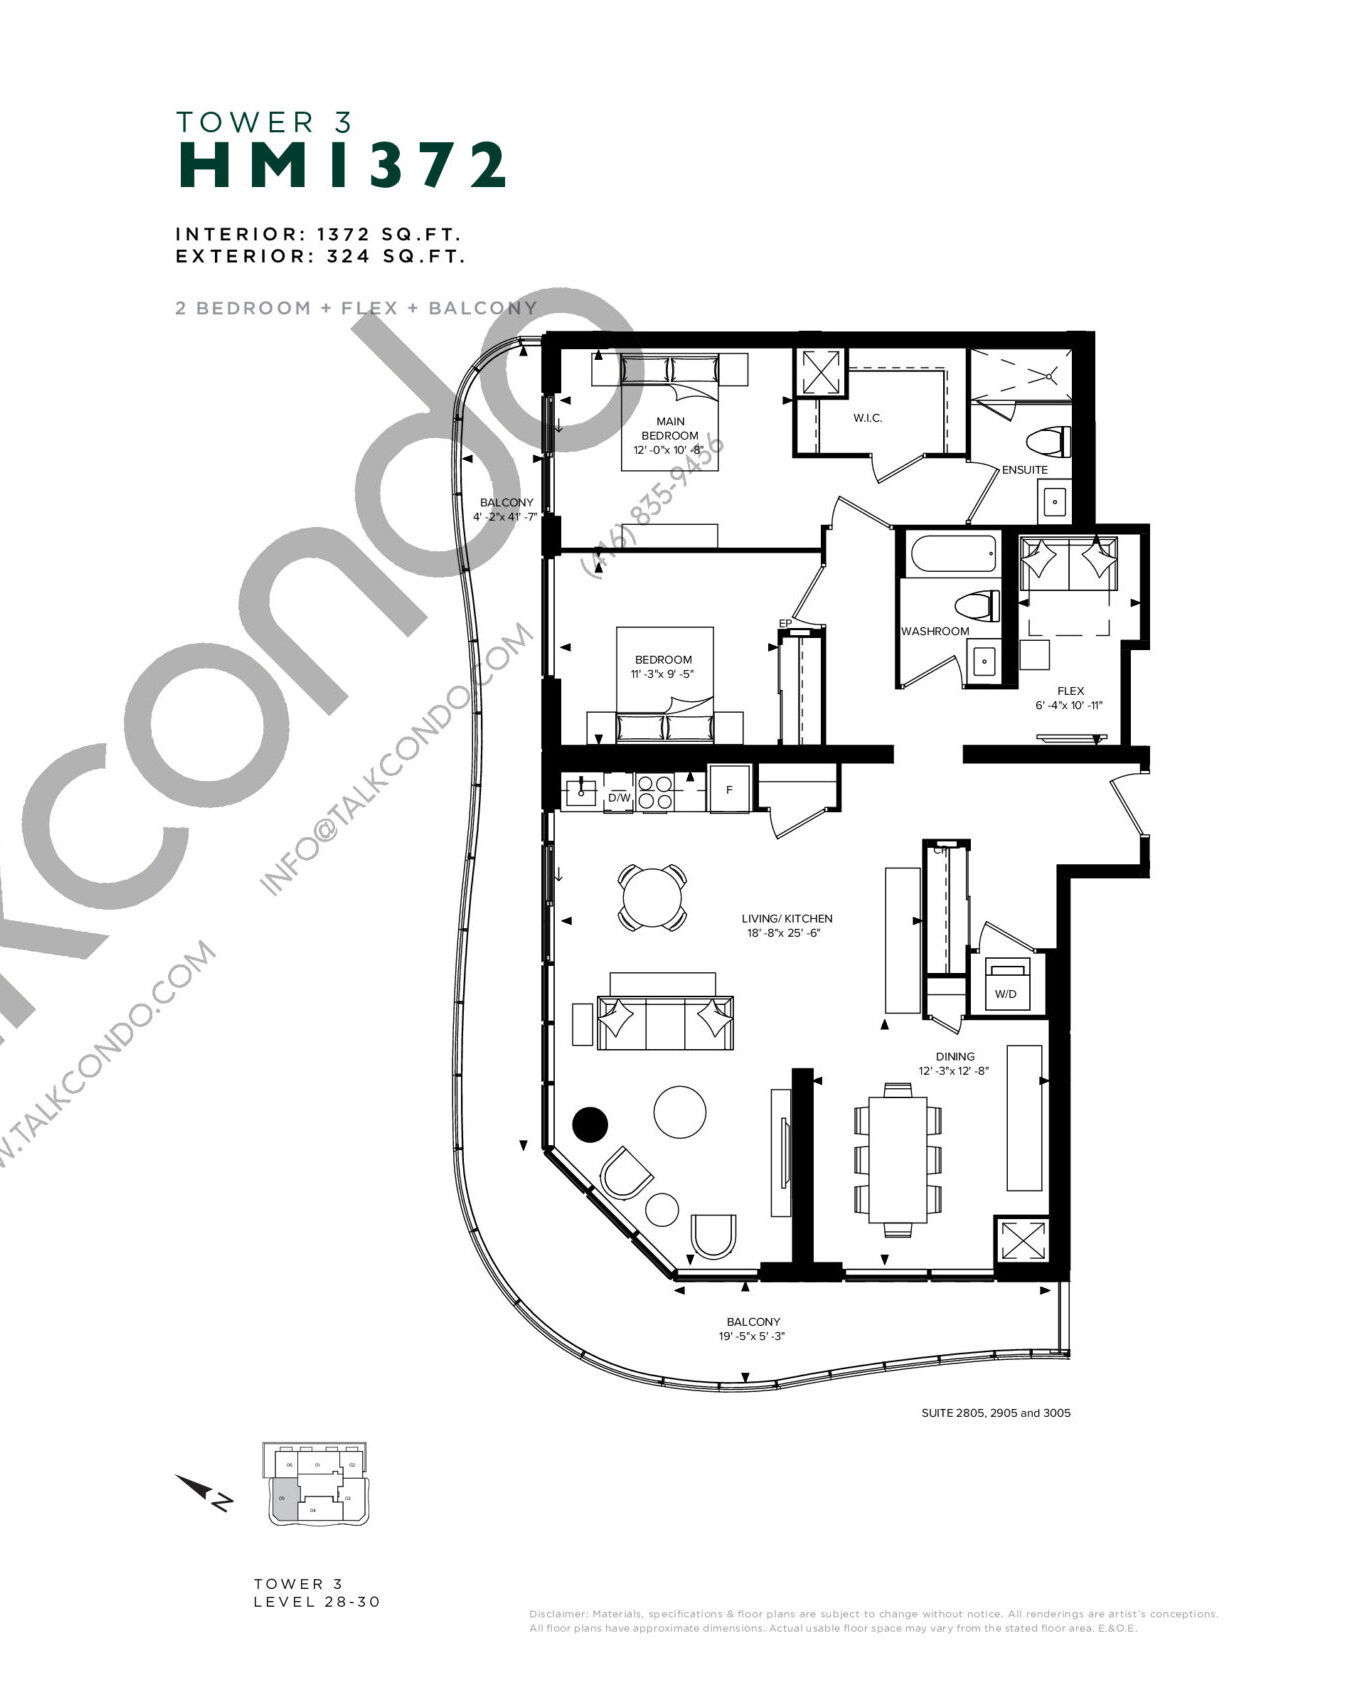 HM 1372 (Tower 3) Floor Plan at Hillmont at SXSW Condos - 1372 sq.ft